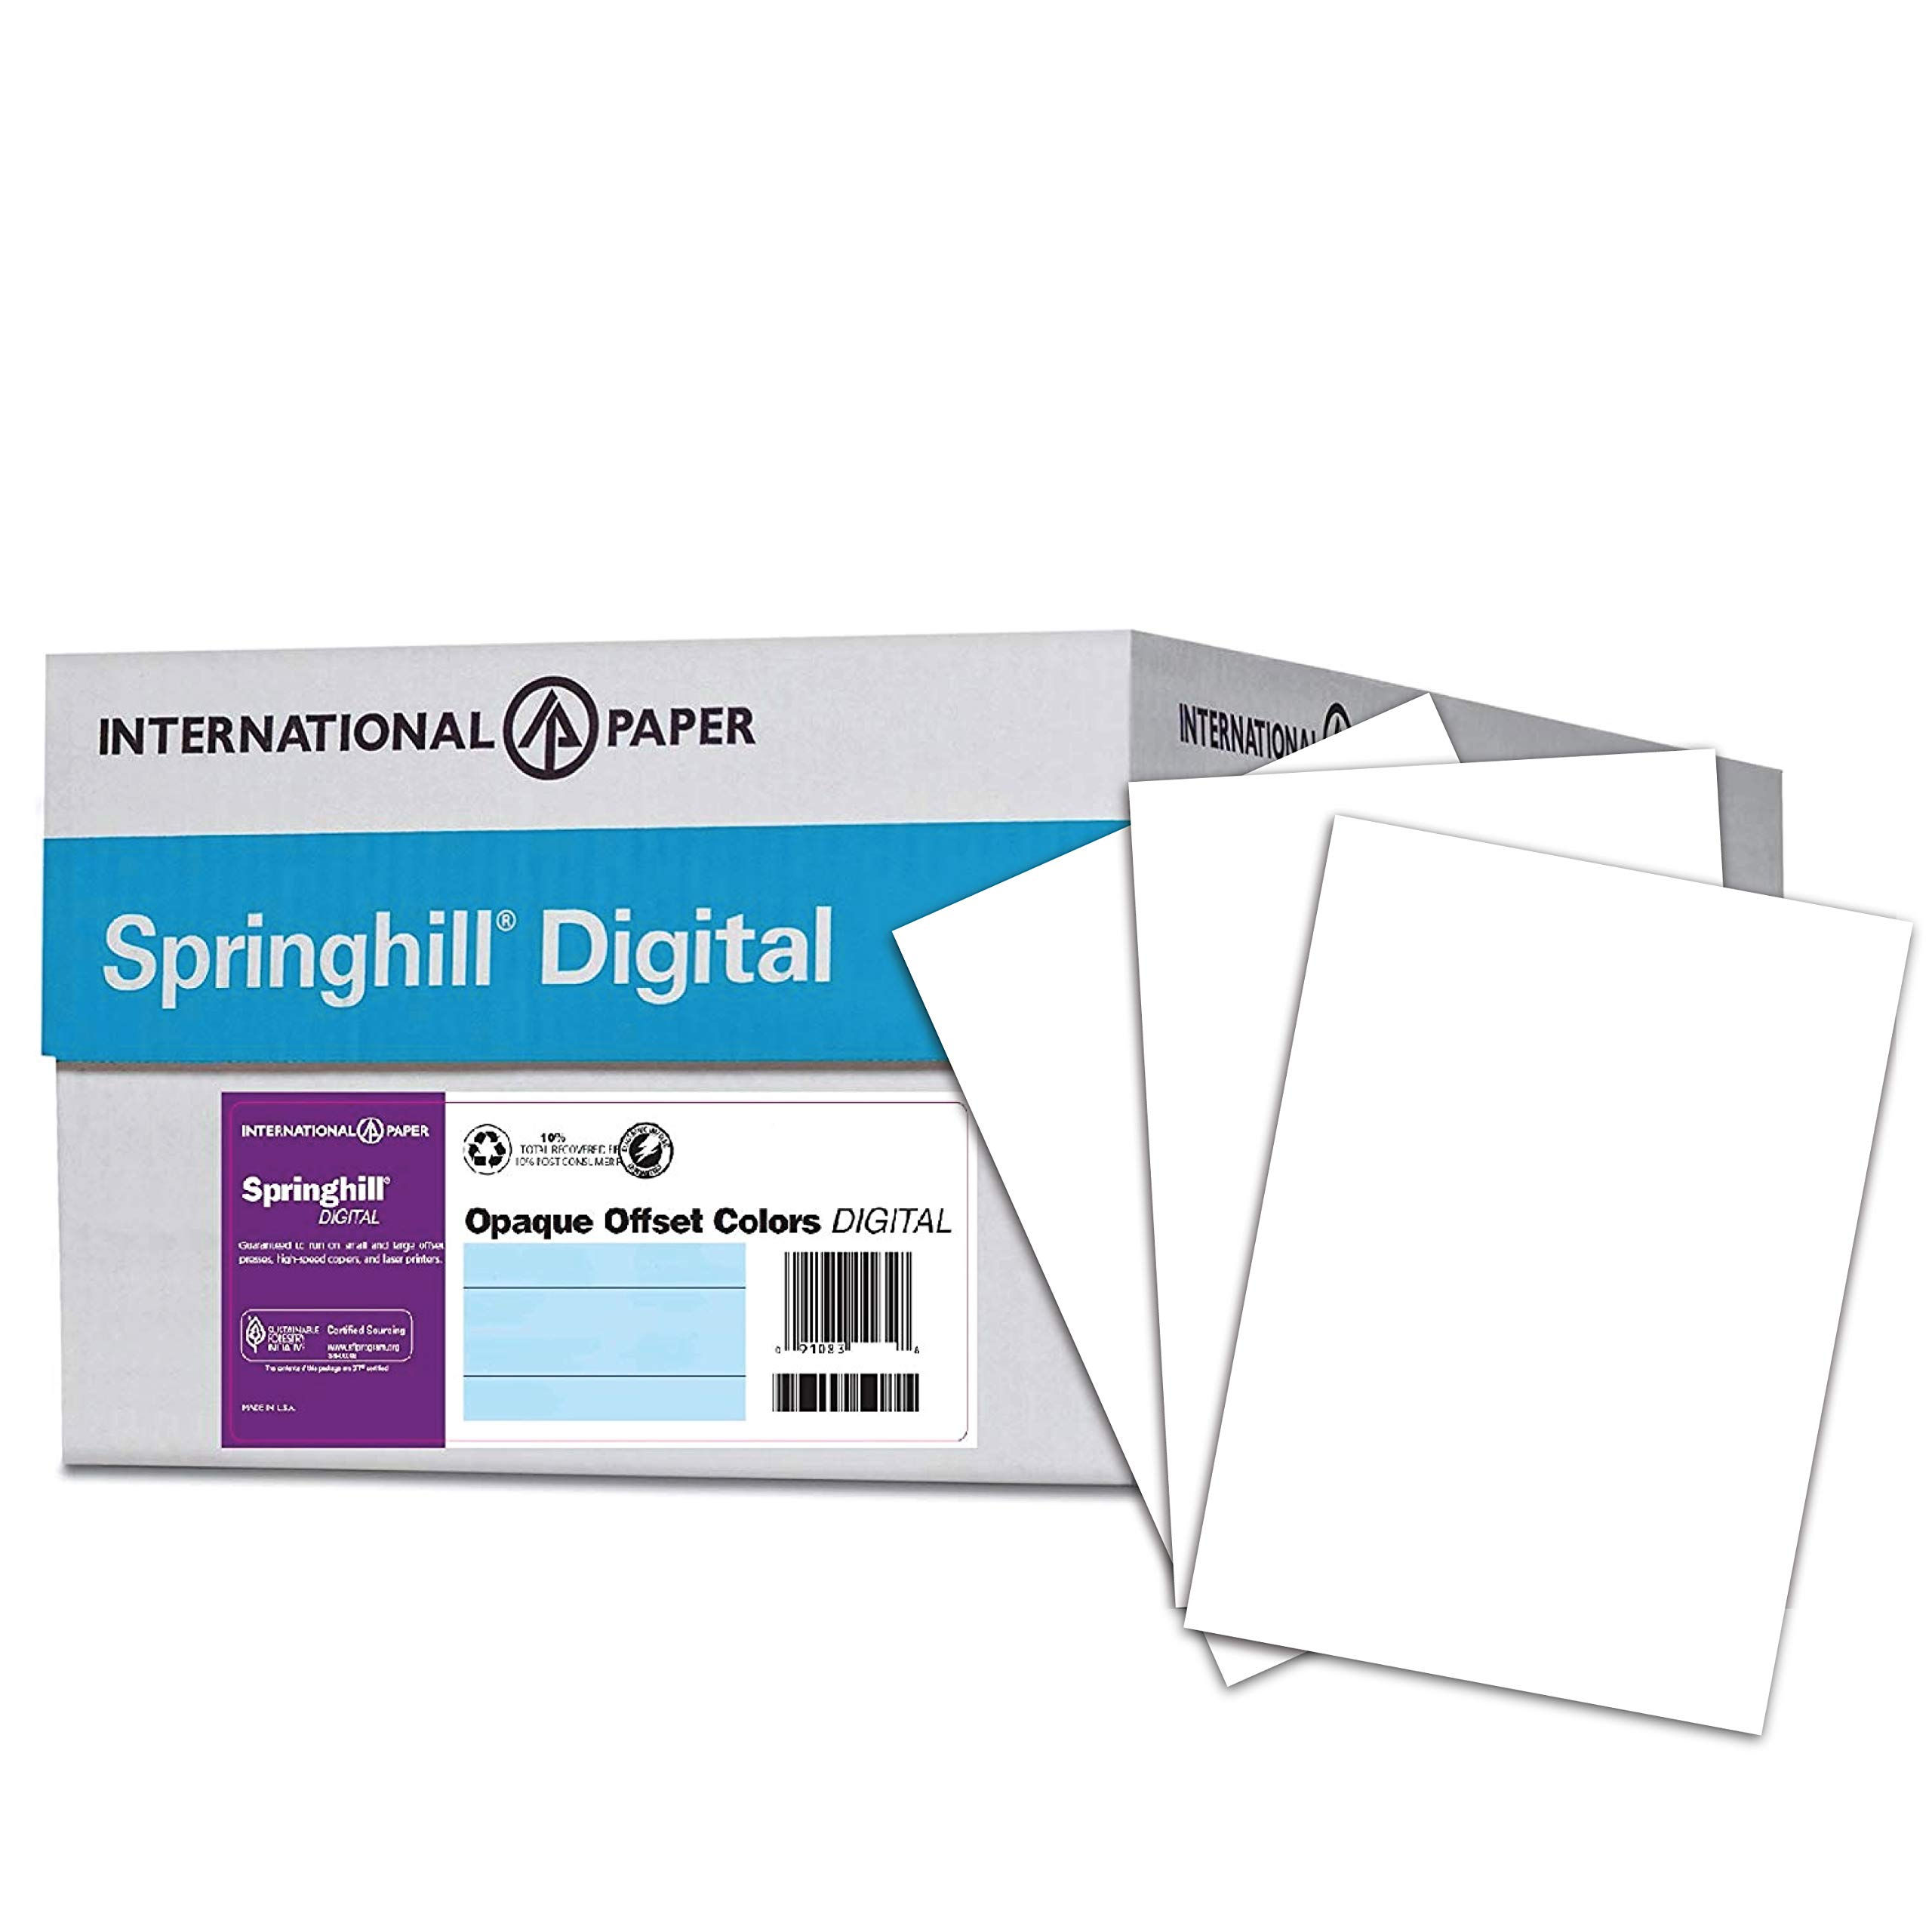 Springhill Cardstock Paper, White Paper, 80lb, 175gsm, 11 x 17, 92 Bright, 4 Reams/1,000 Sheets -  Vellum Card Stock, Thick Paper (016204R) by Spring Hill